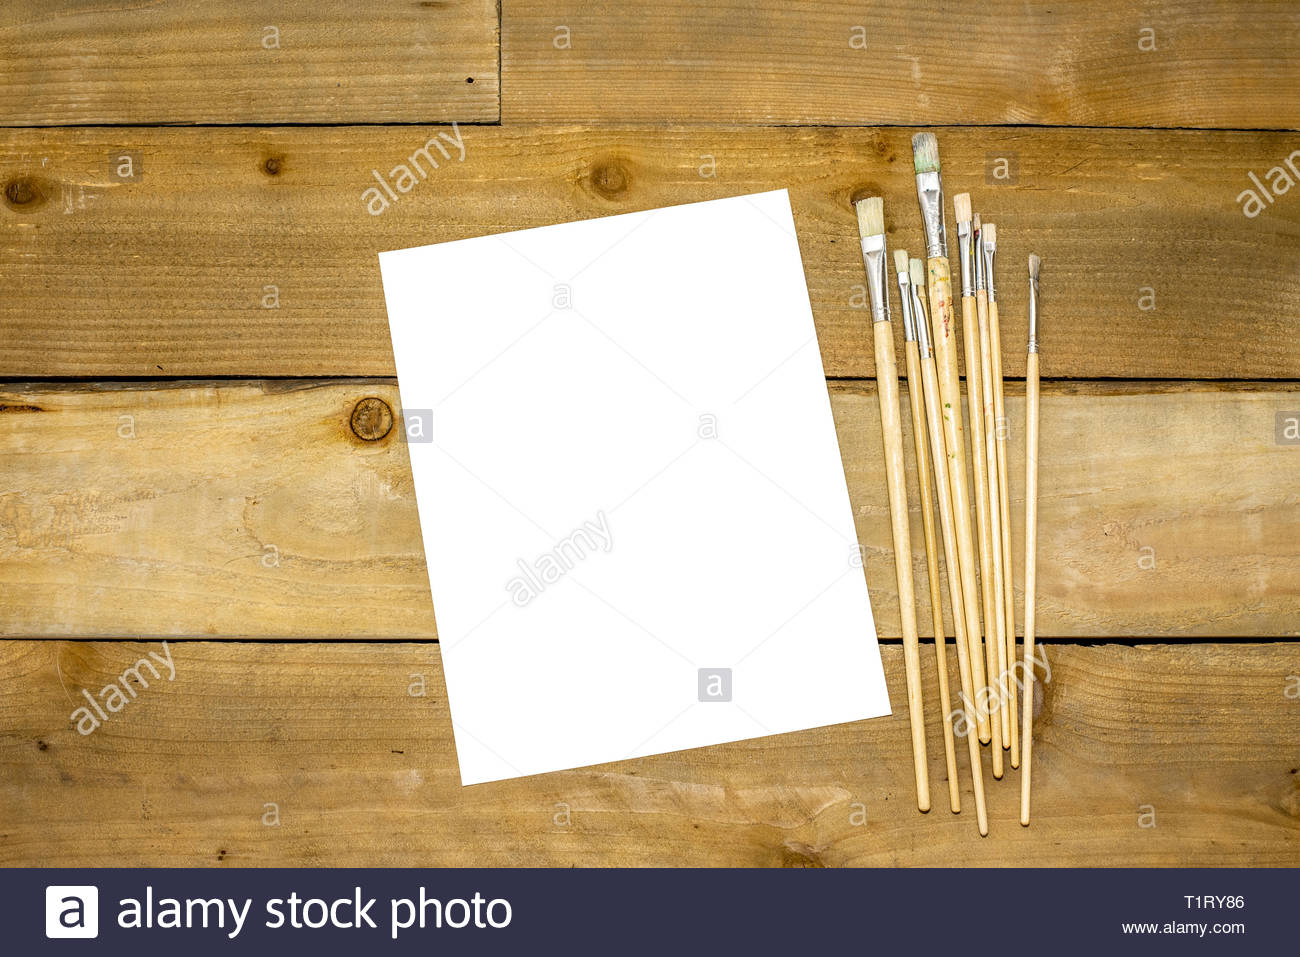 Paint brushes on a rustic distressed wooden background Stock Photo